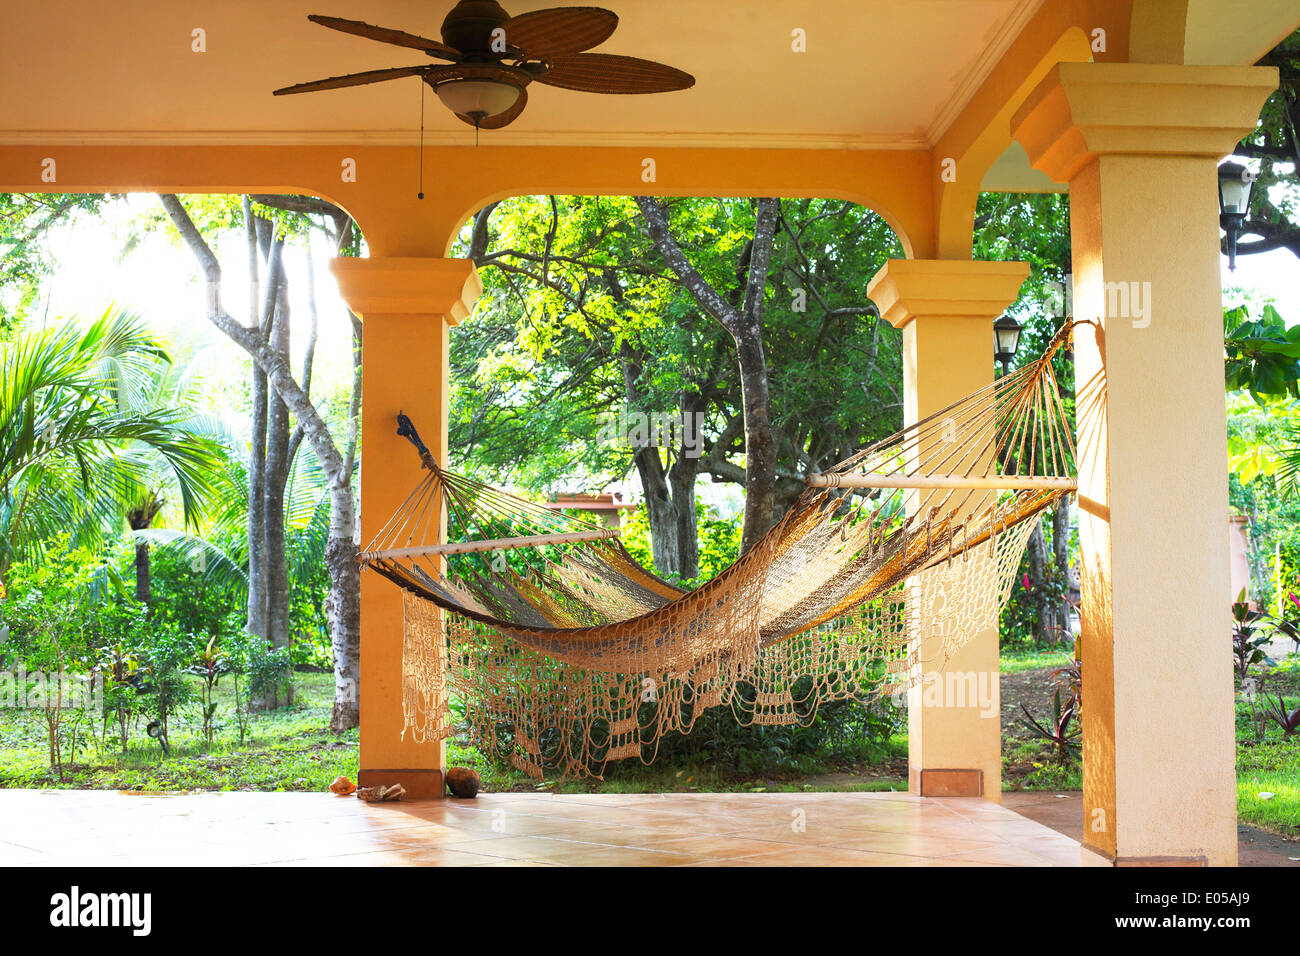 An inviting hammock hangs on a sunny porch with the tropics in the background. Stock Photo